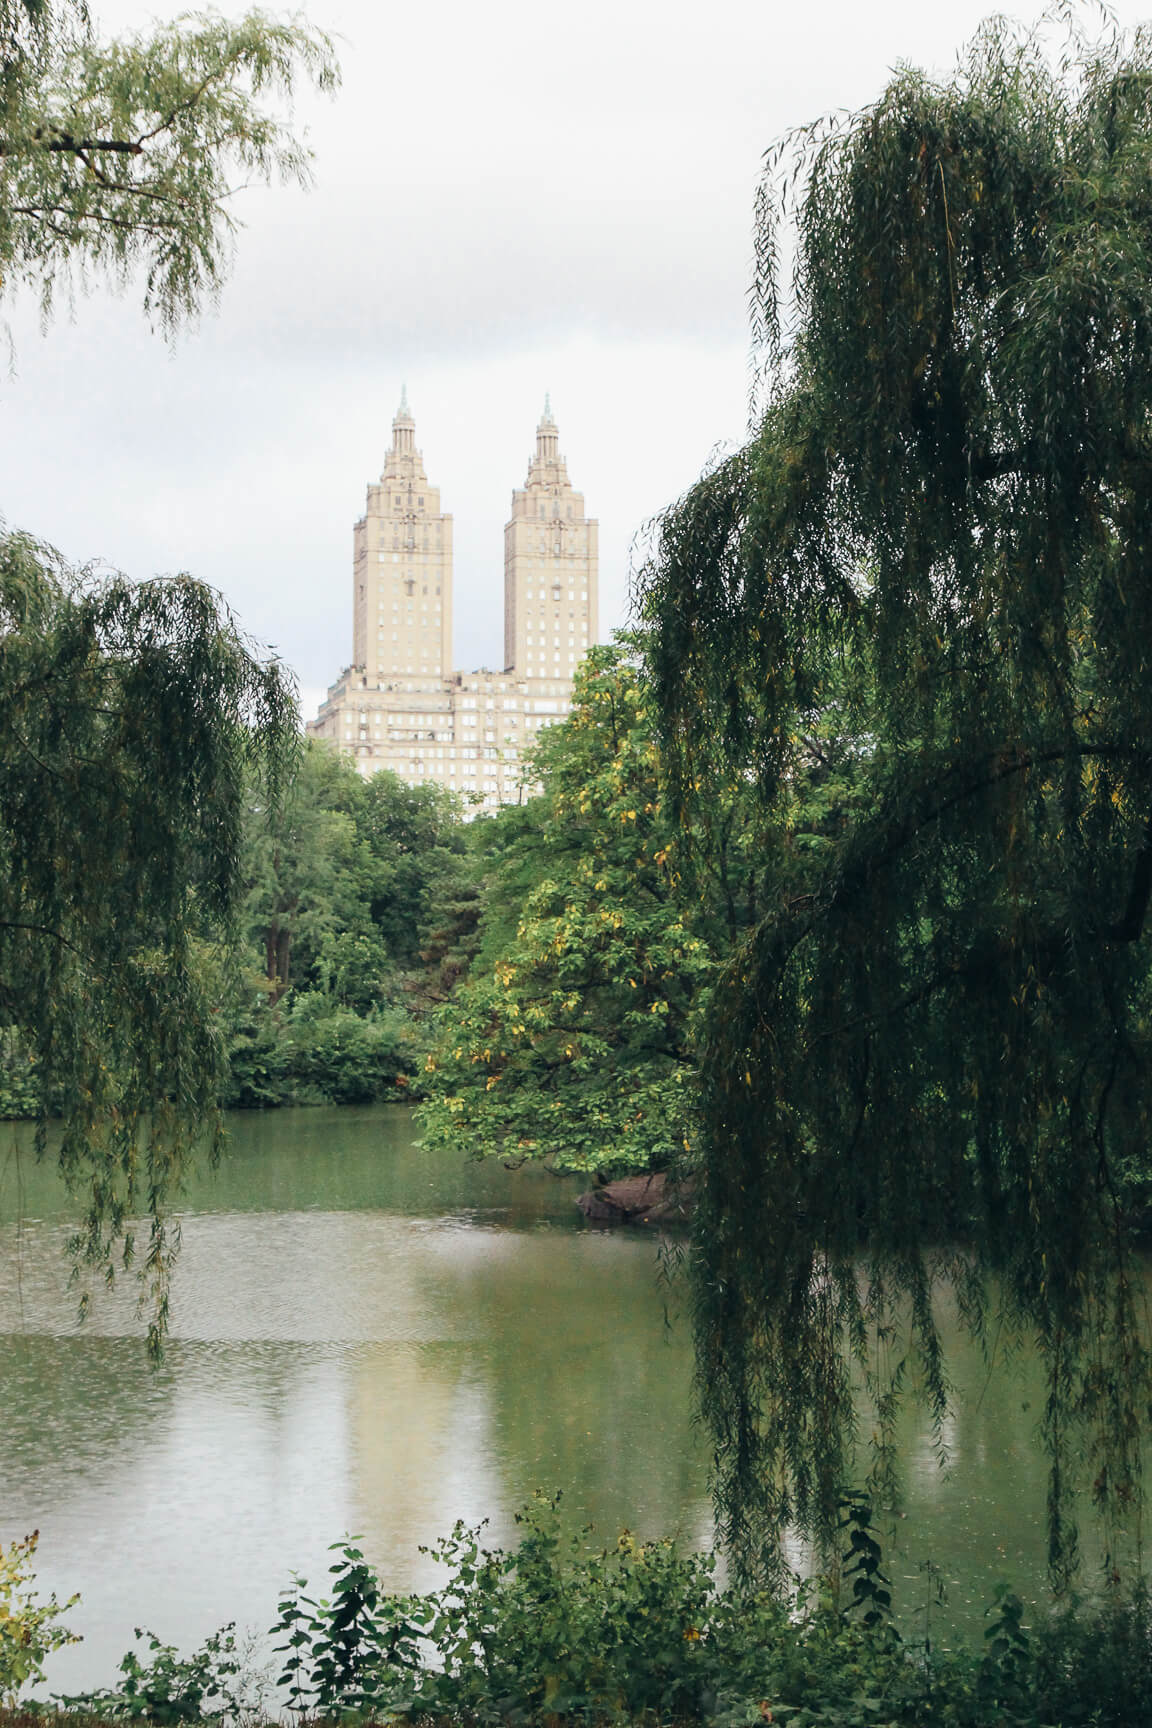 The Lake Central Park